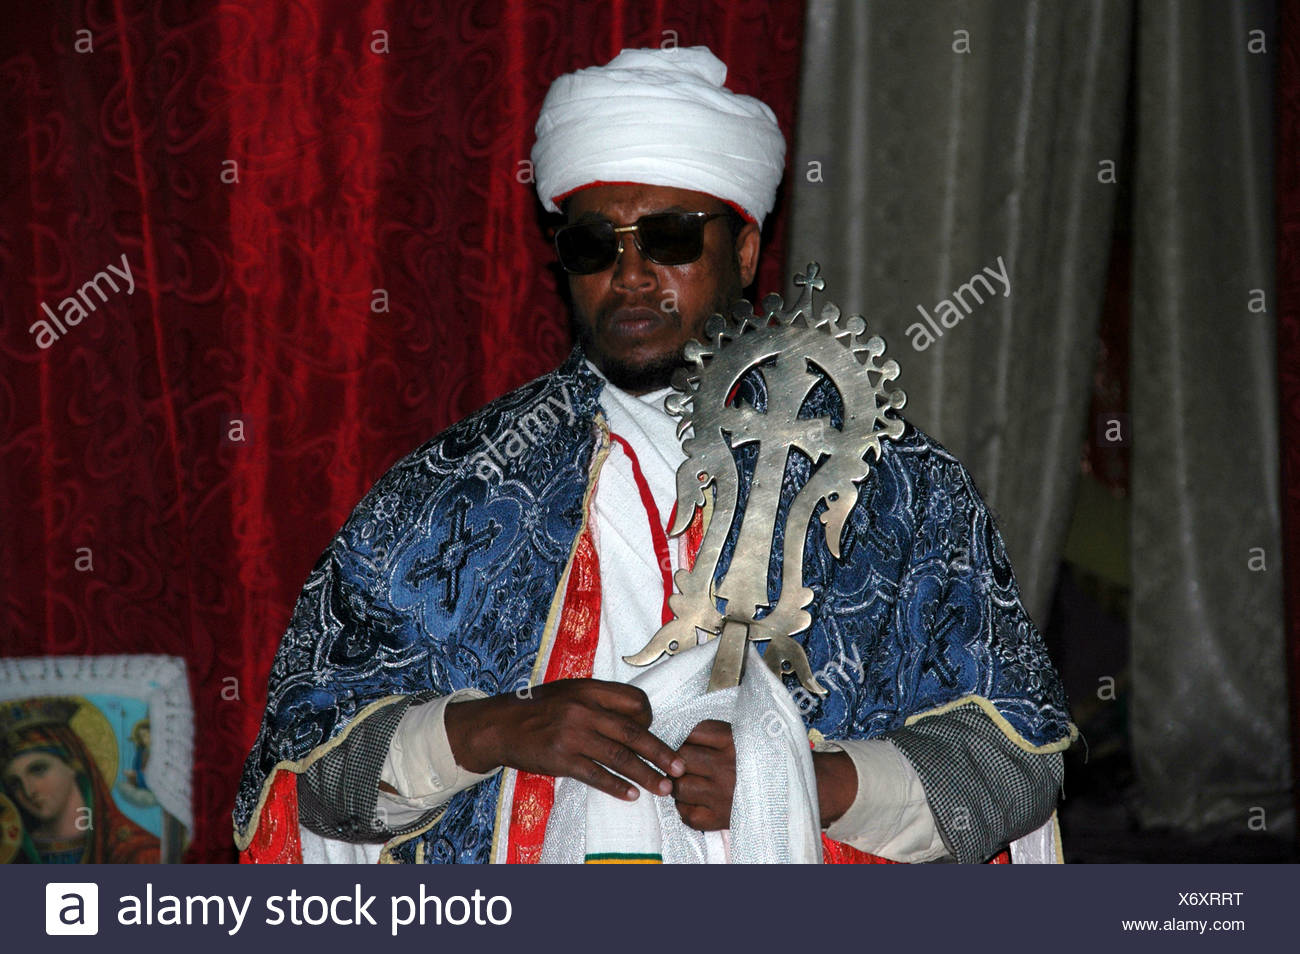 Priest wearing a white turban and cape carrying the Lalibela cross of gold, Beta Medhane Alem rock church, Lalibela, Ethiopia,  - Stock Image